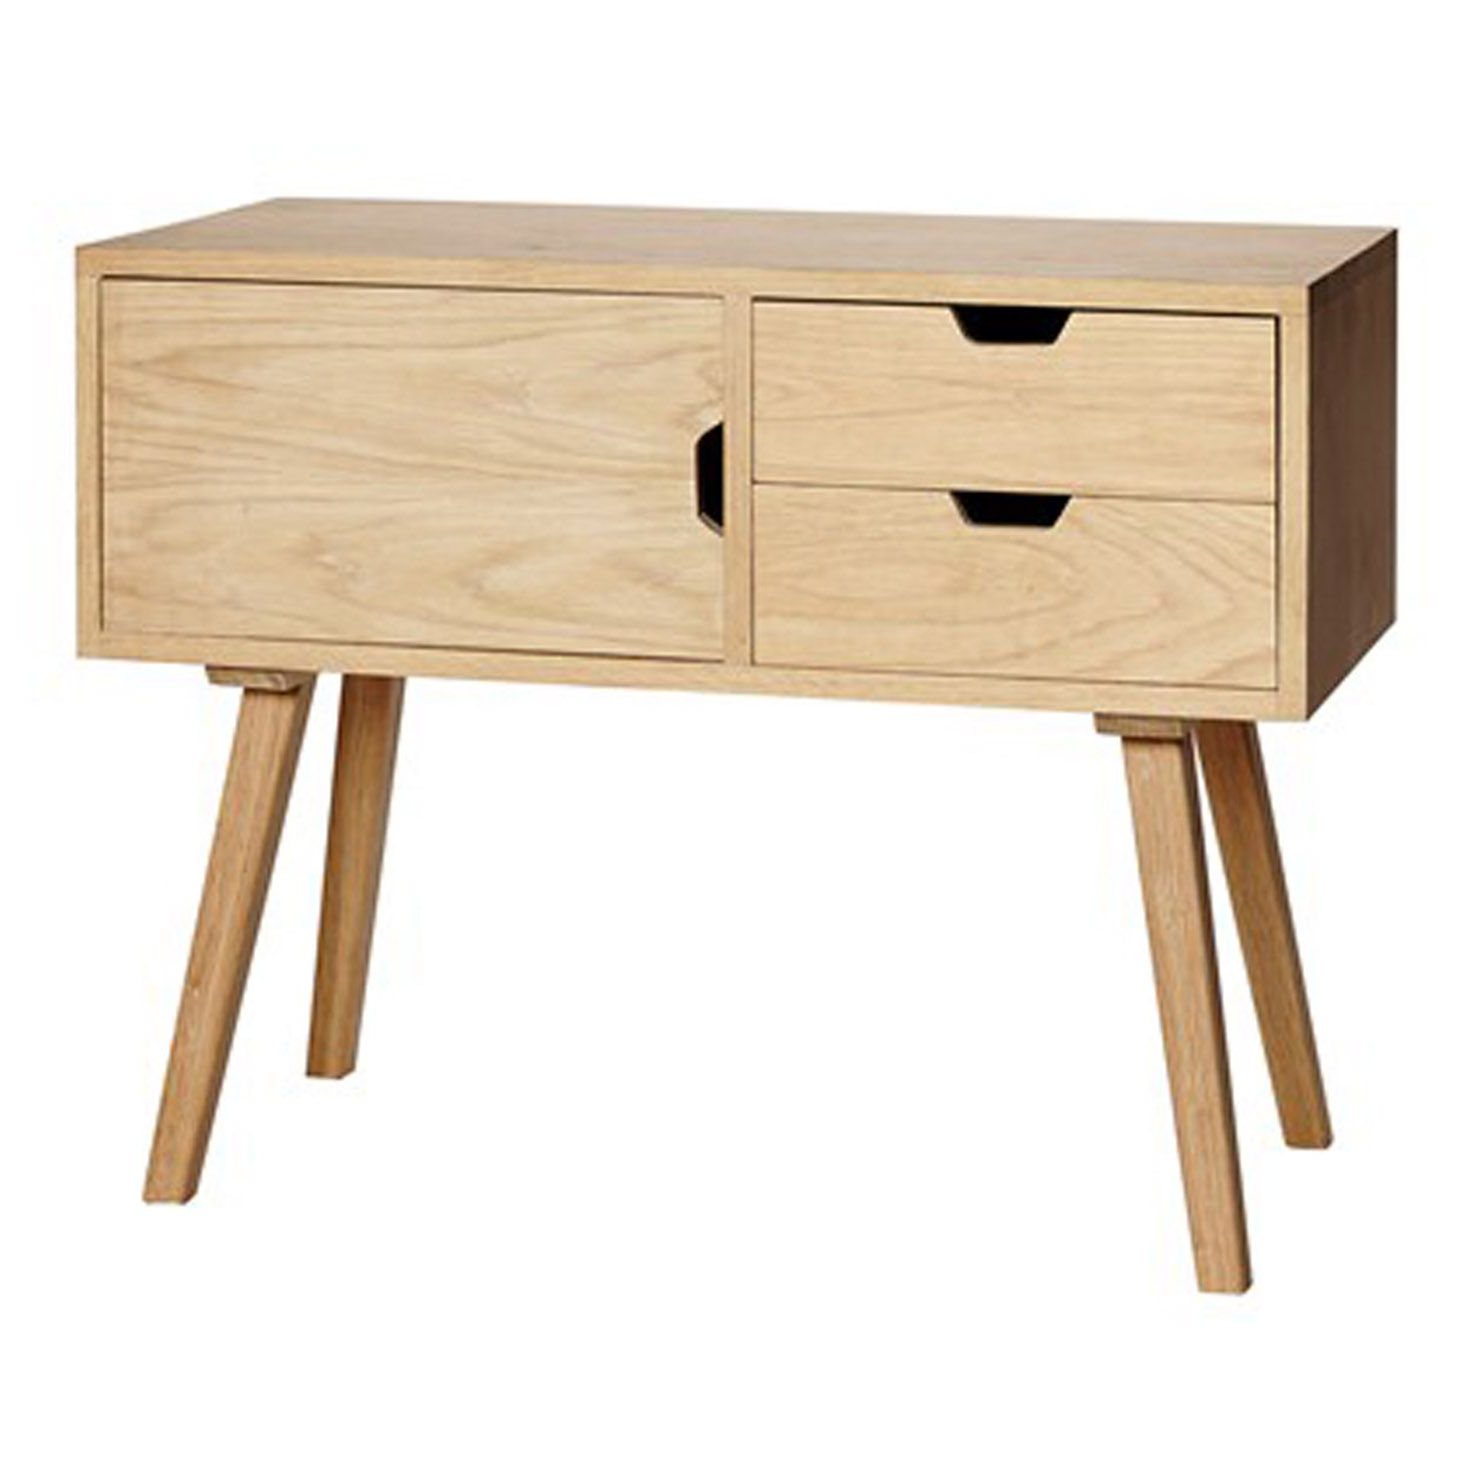 """Most Popular Orianne 55"""" Wide 2 Drawer Sideboards Intended For Dresser W/2 Drawers & Door, Oak, Nature (View 18 of 20)"""